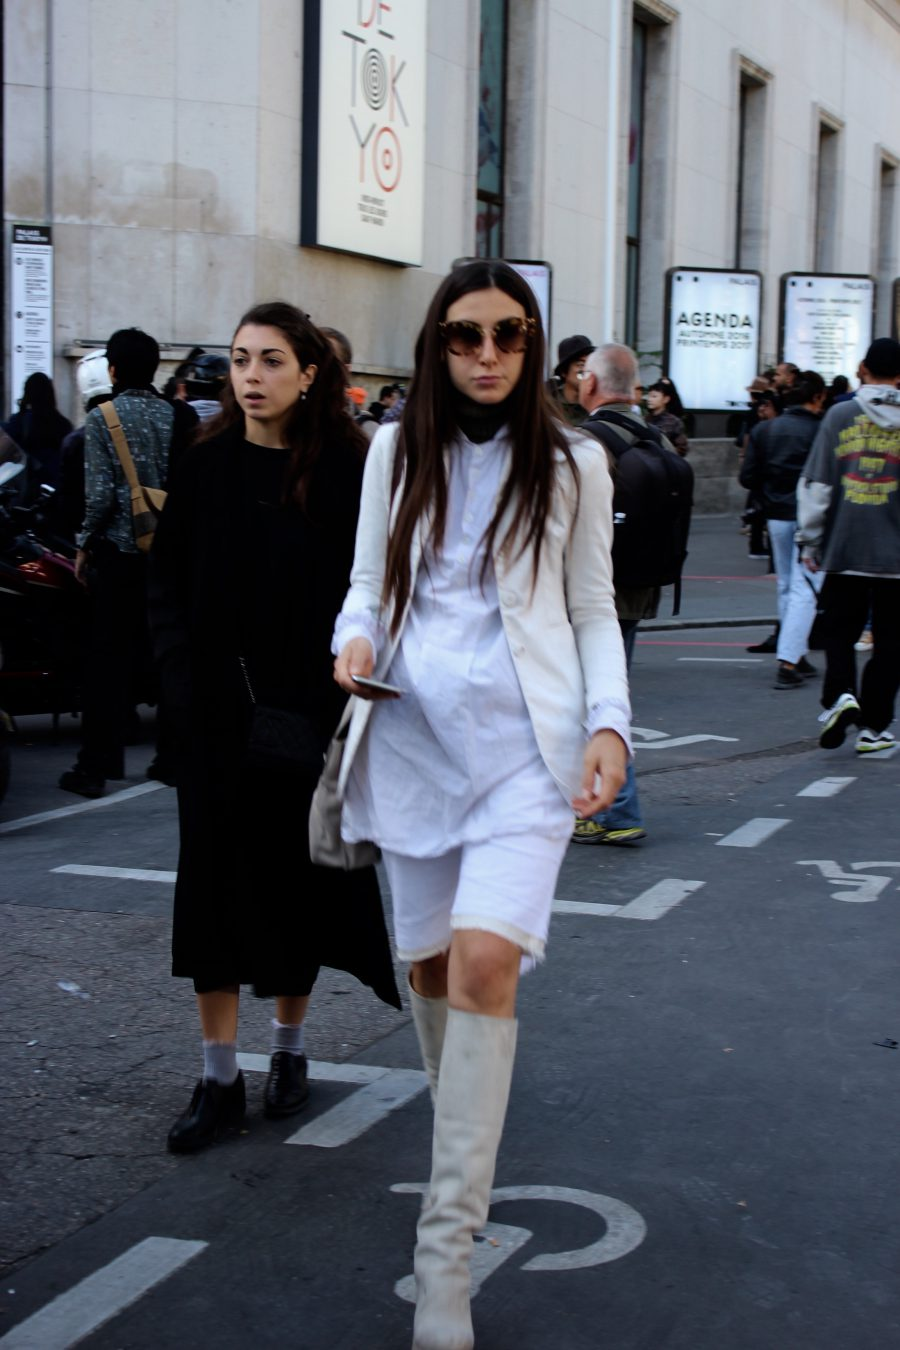 Streetstyle Paris Fashion Week, Sakai